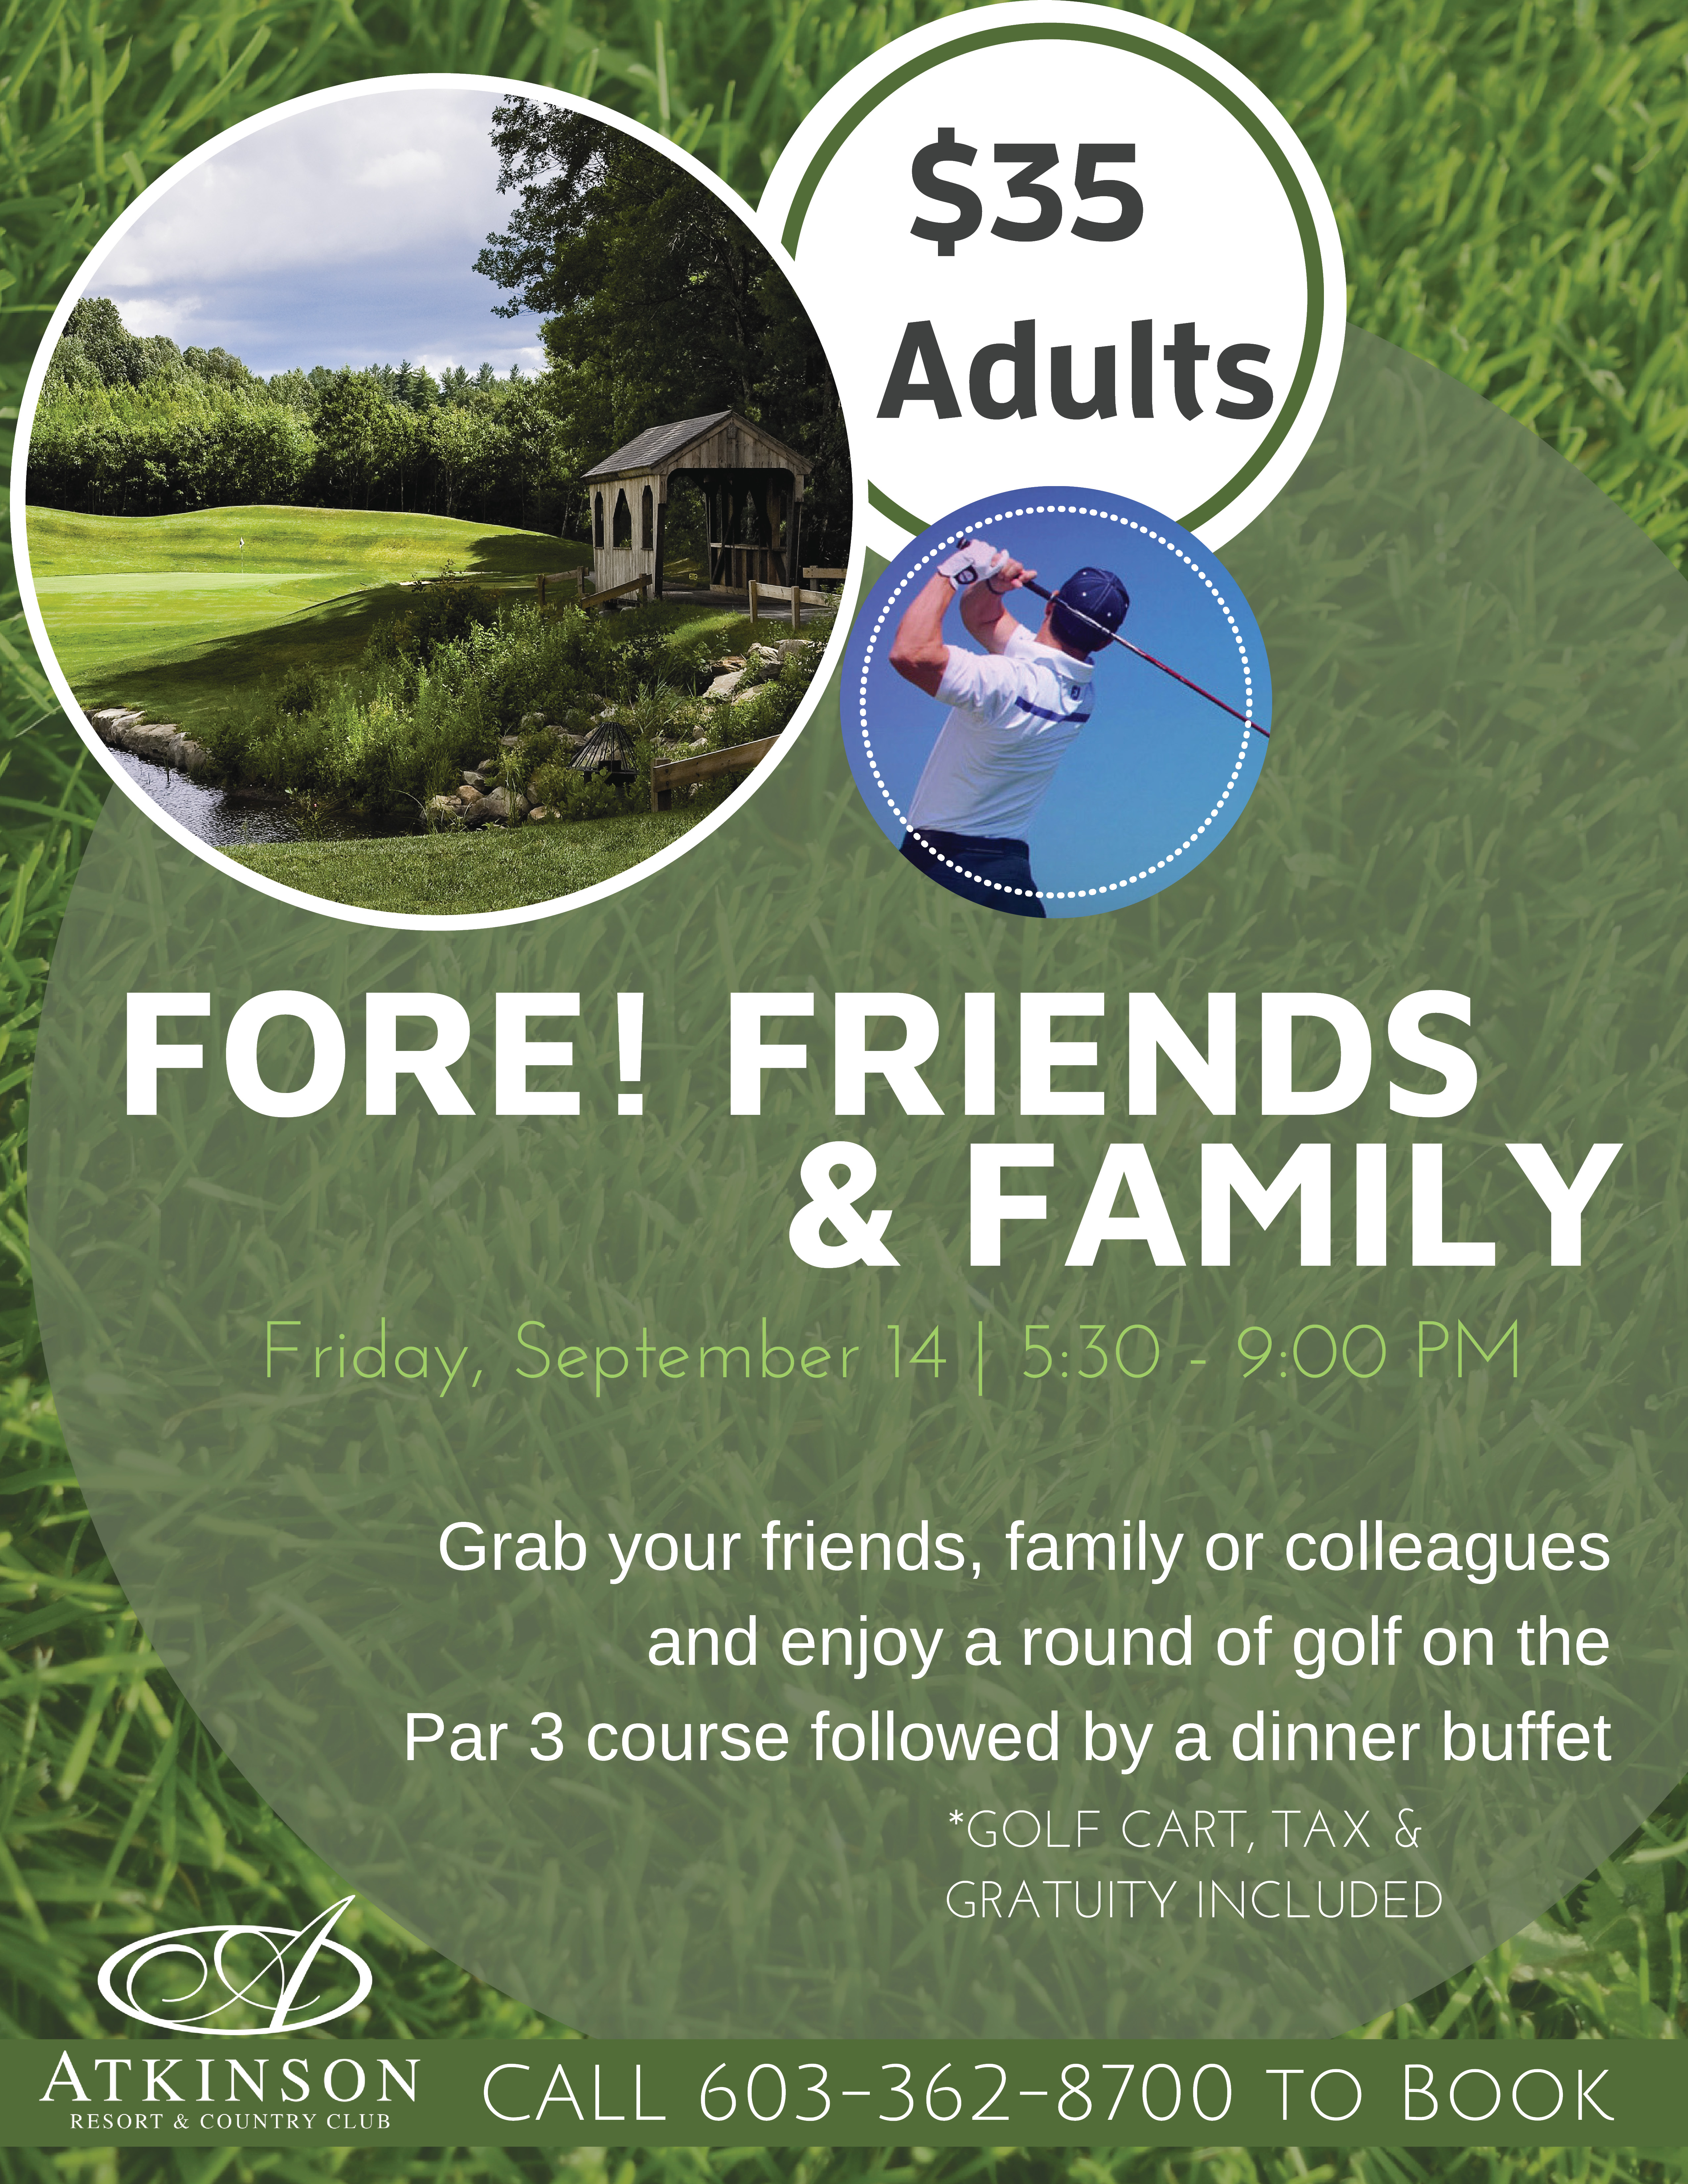 ACC-FF-may-11-family-golf-night.jpg